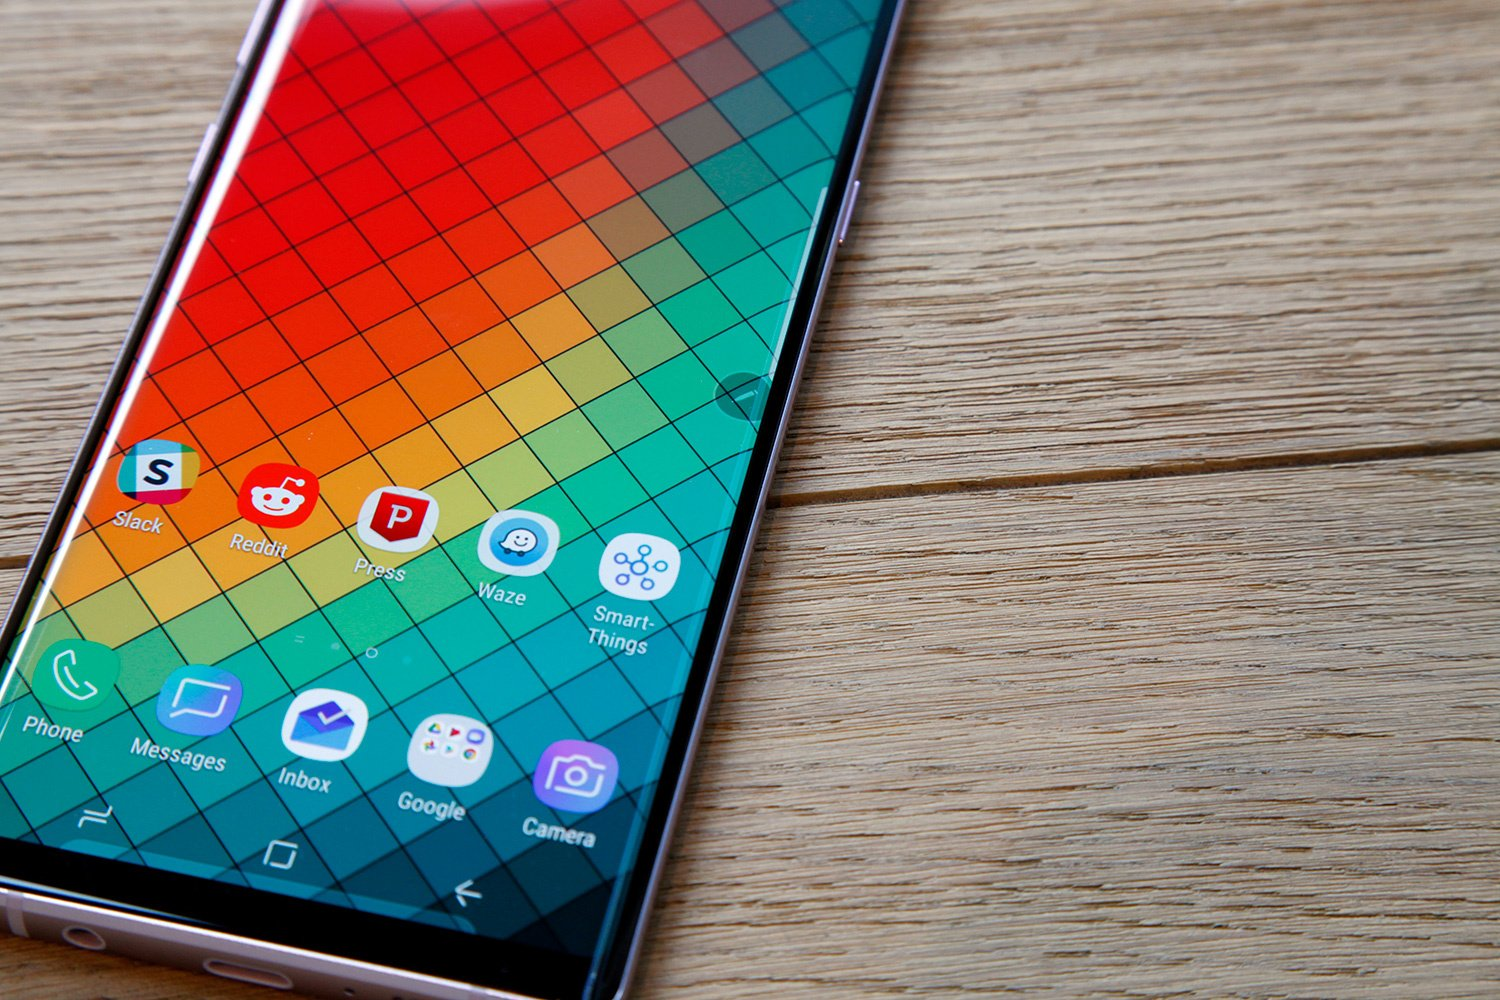 samsung, galaxy s10, samsung galaxy s10, samsung infinity display, galaxy s10 display, galaxy s10 release date